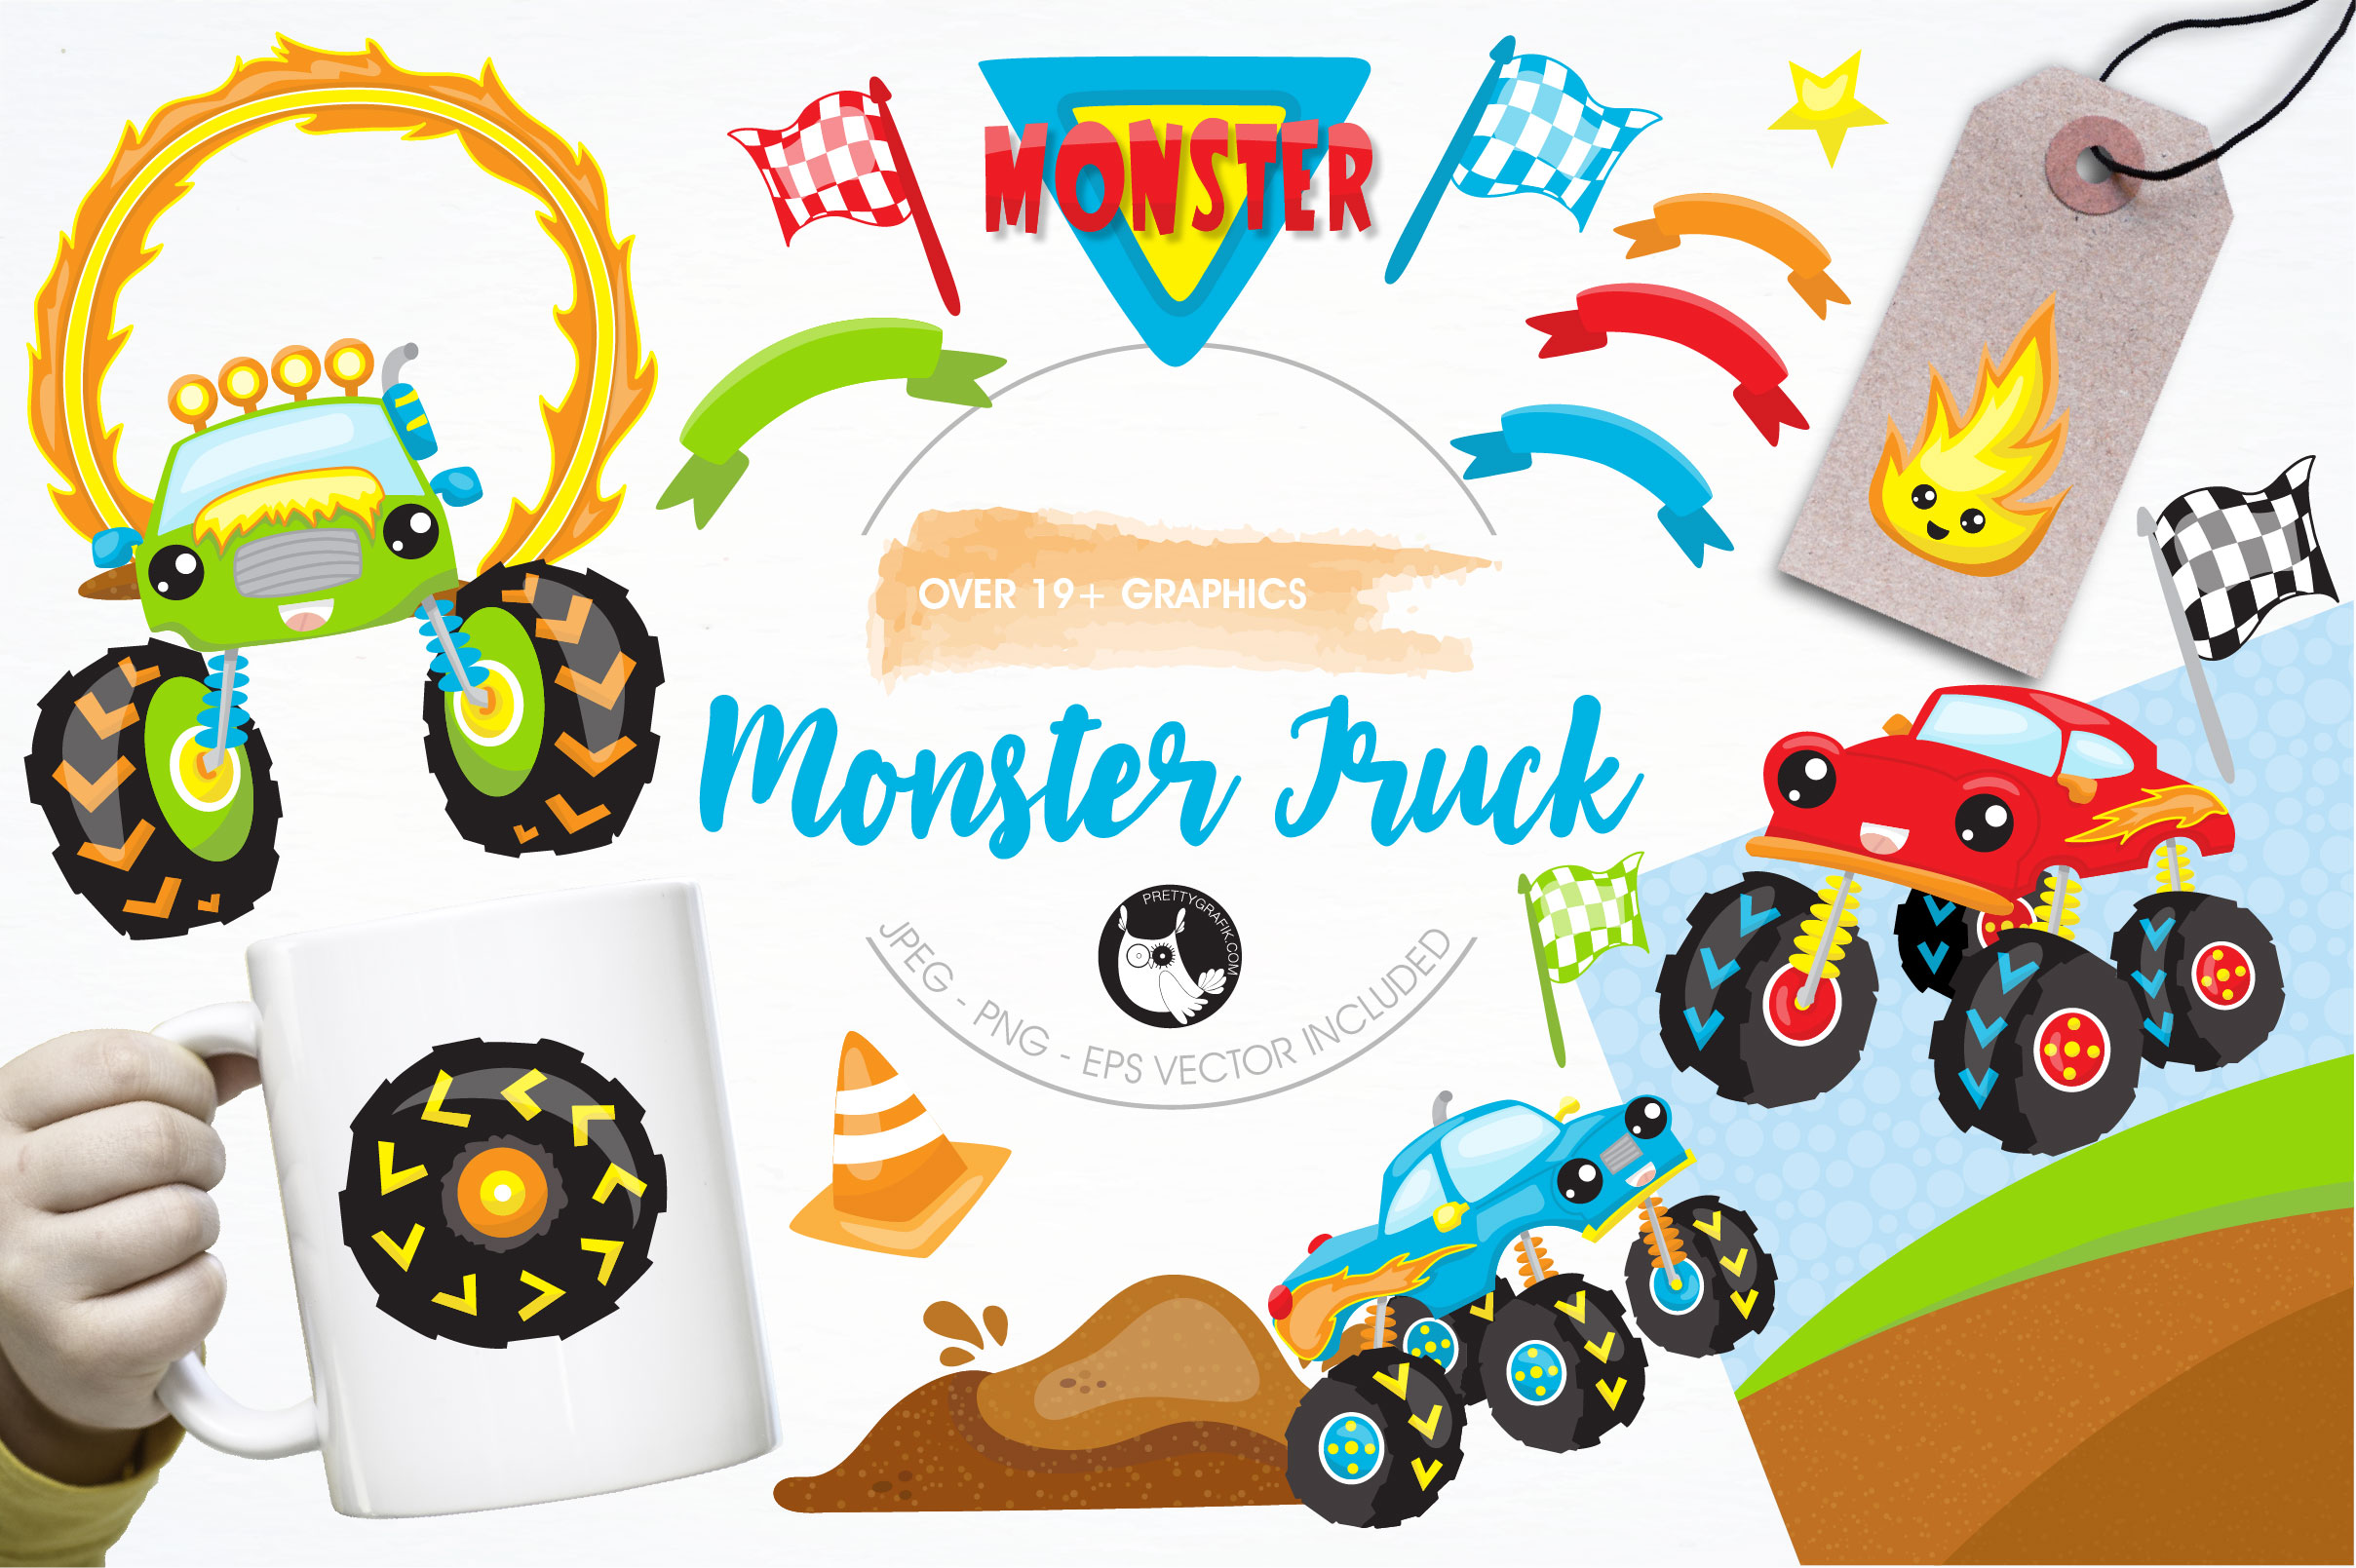 Monster truck graphics and illustrations example image 1